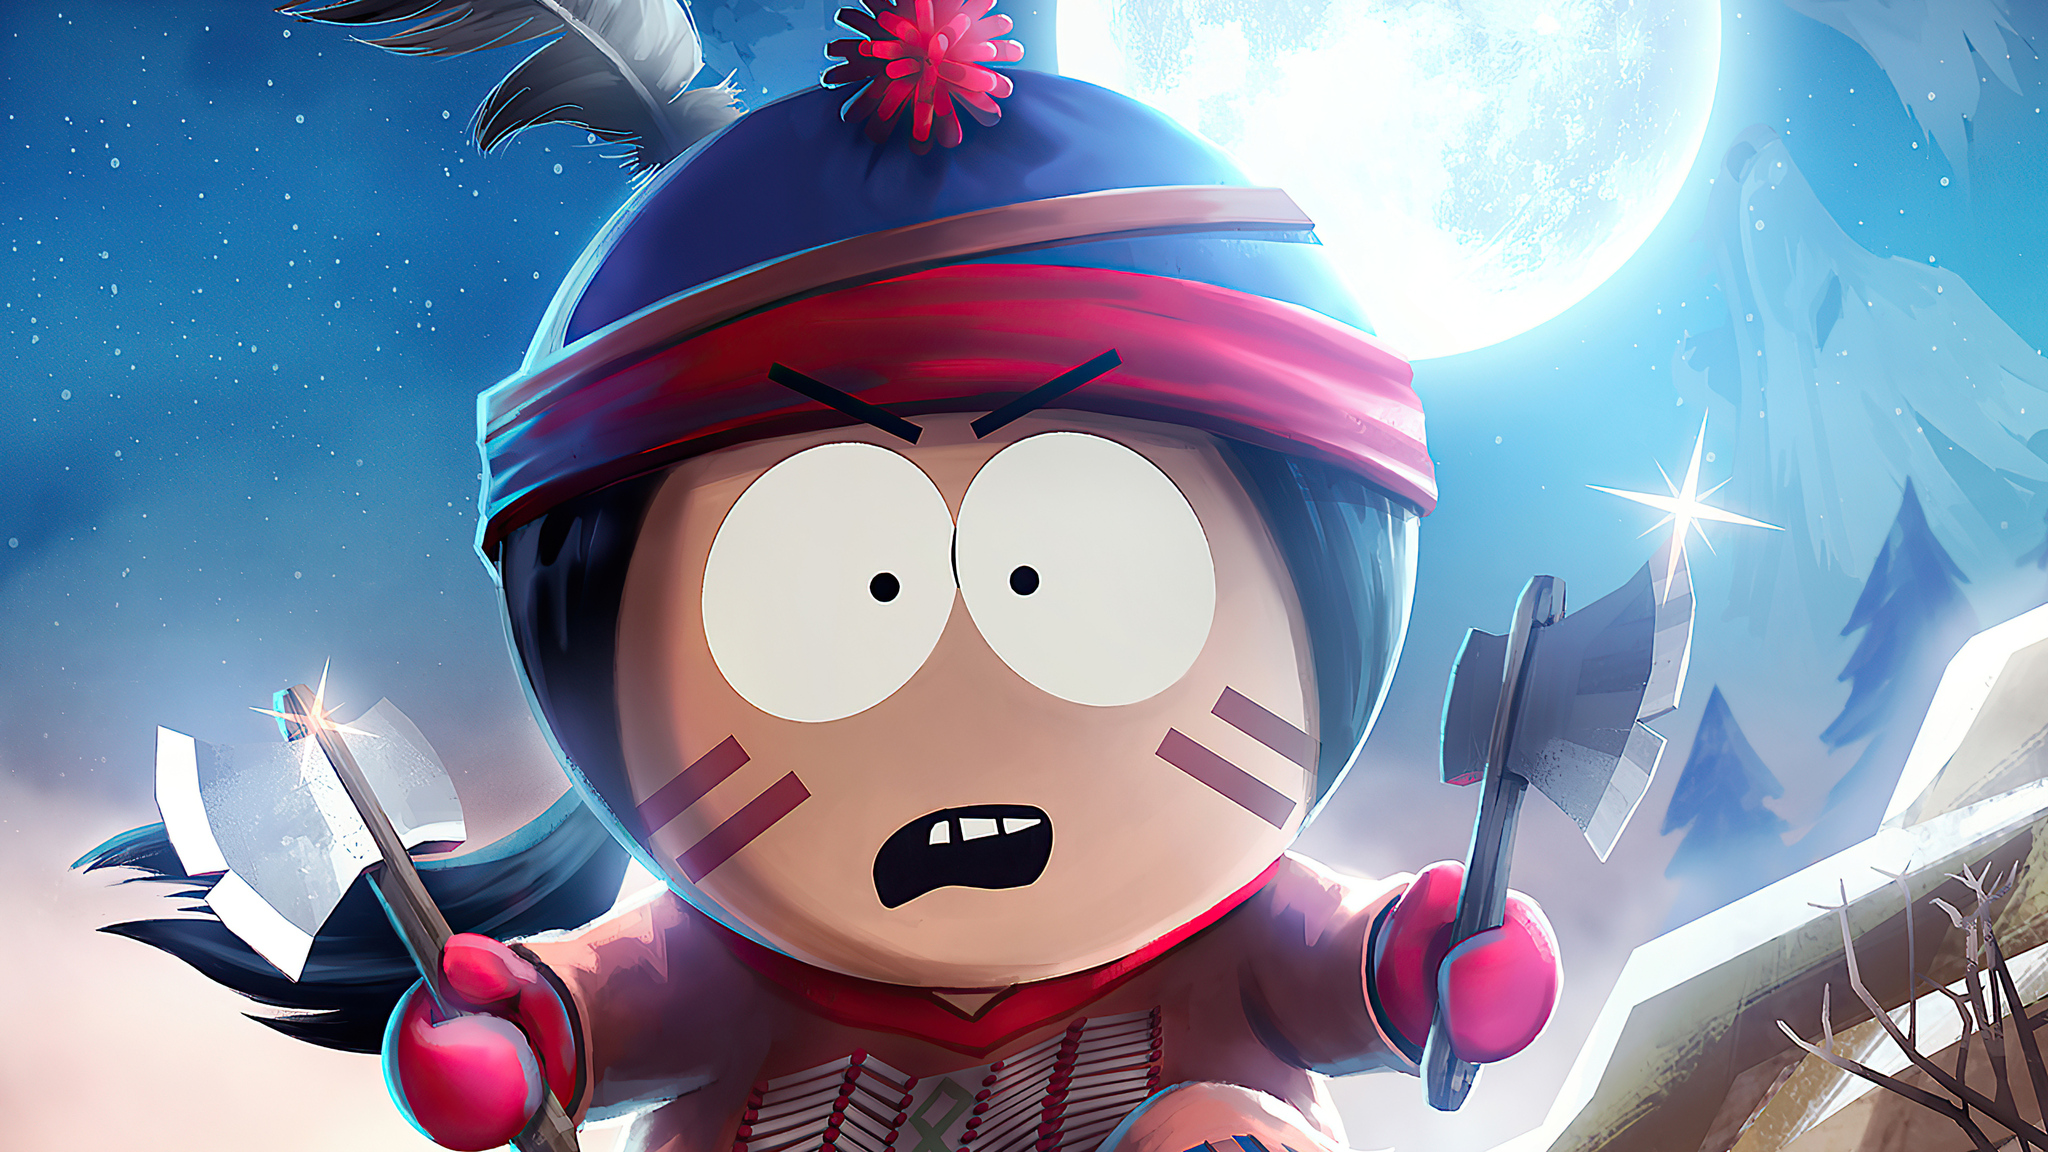 south-park-phone-destroyer-4k-ti.jpg